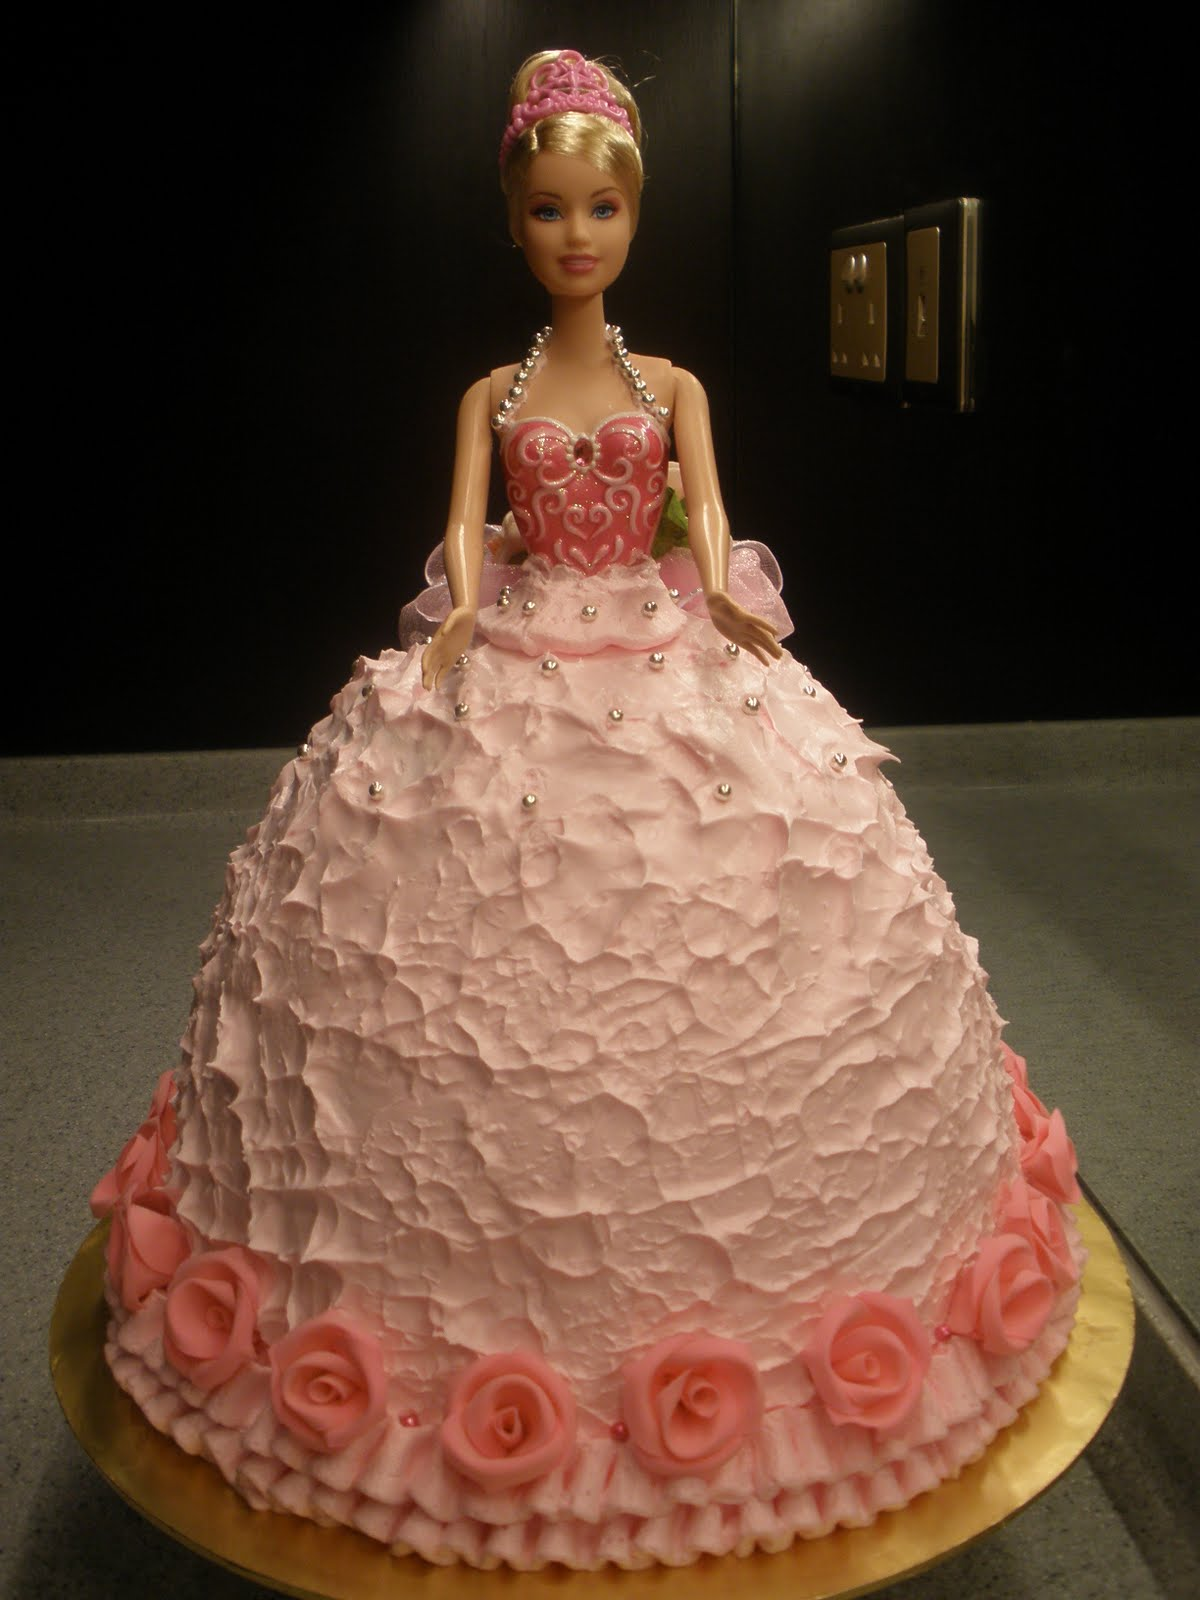 Images Of Barbie Birthday Cake : Birthday Cake: Pink Barbie Birthday Cakes